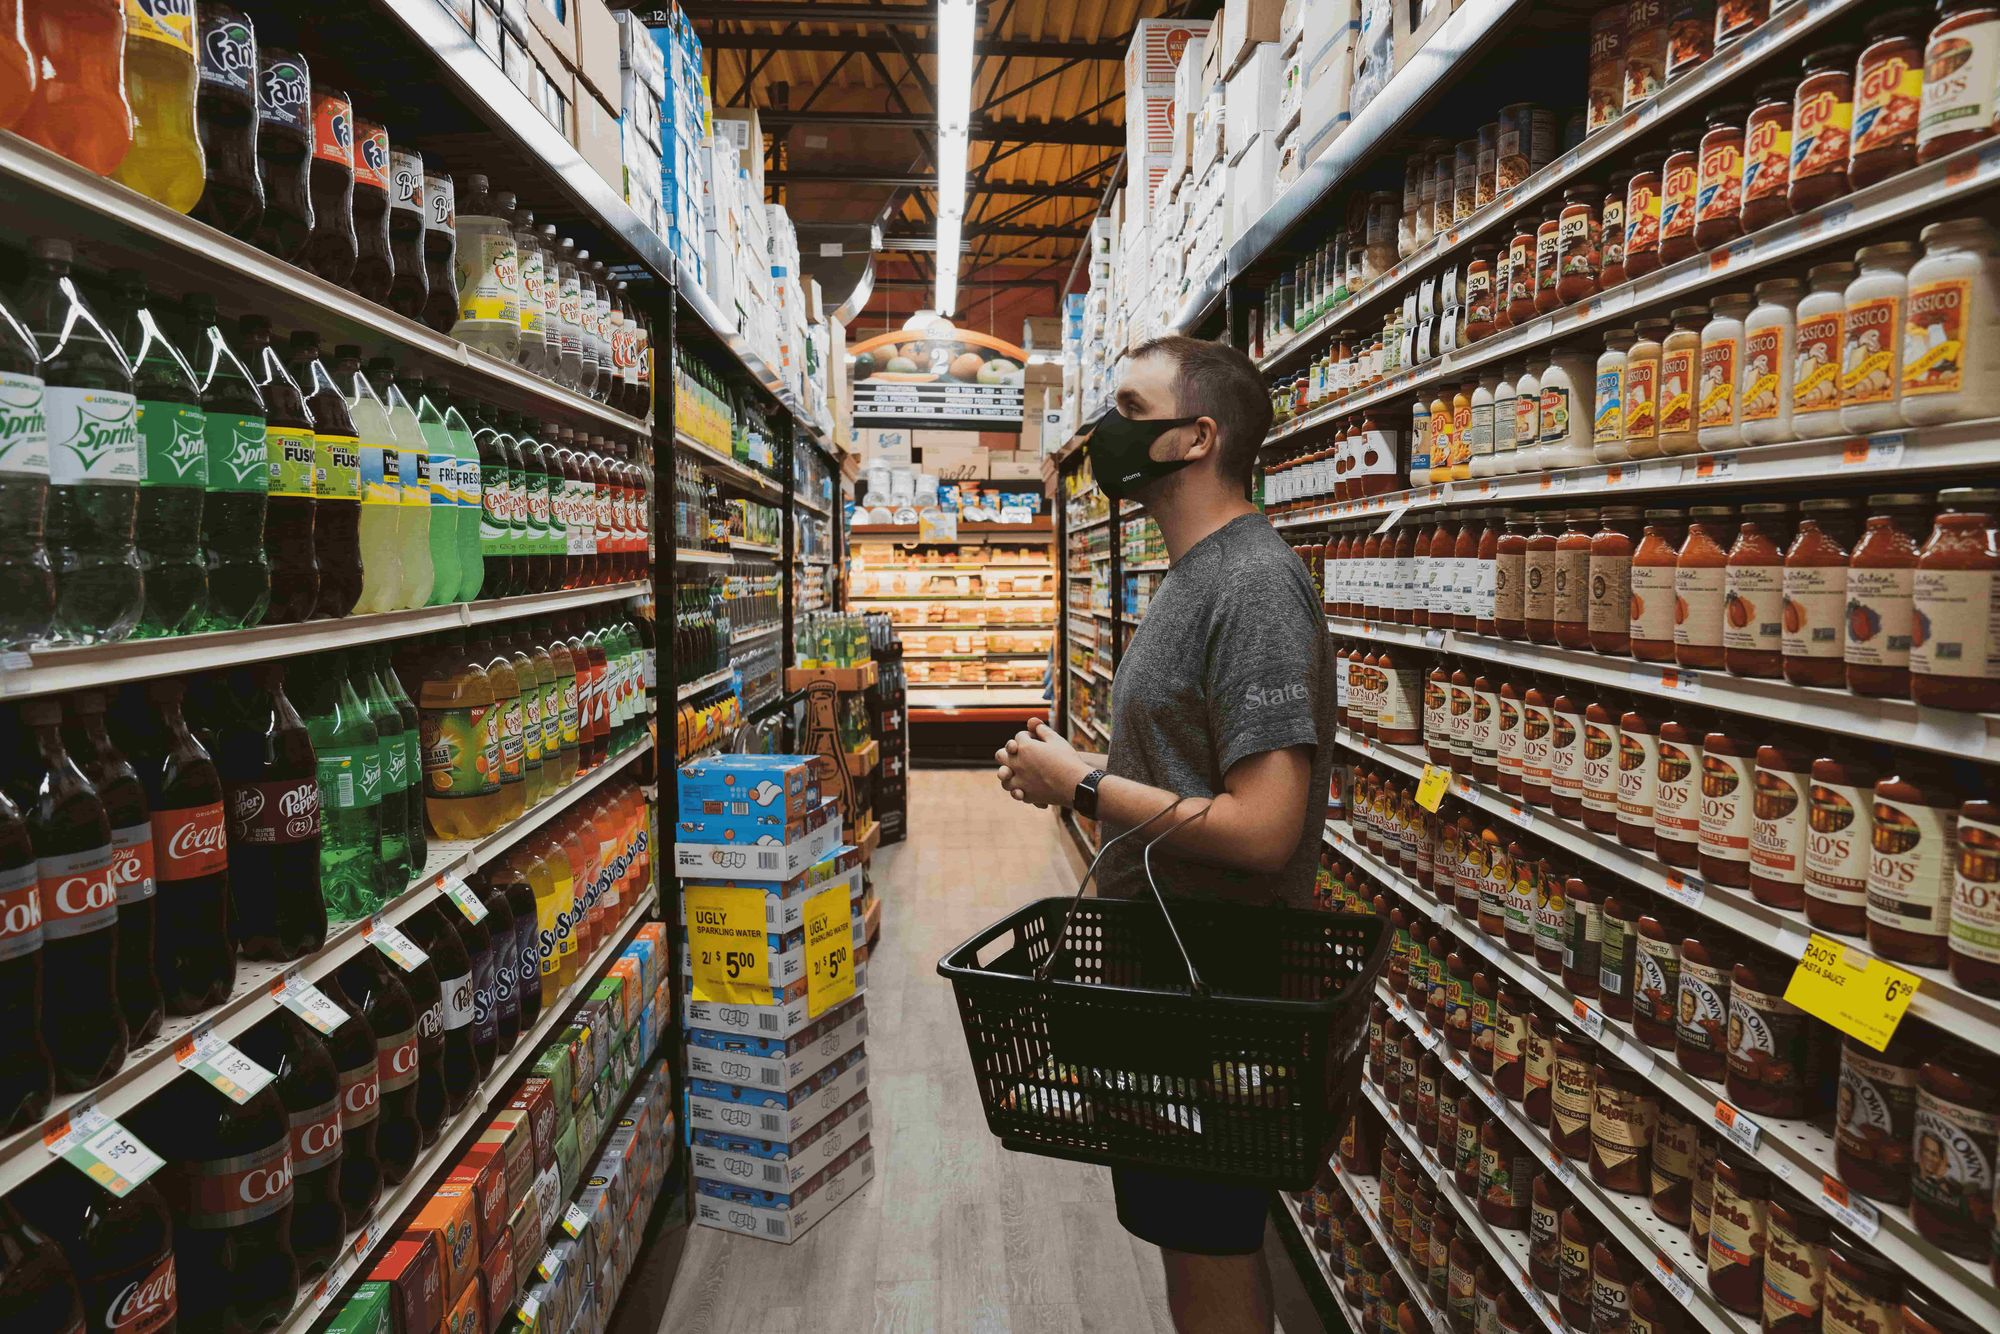 A man looking at beverages on a grocery store